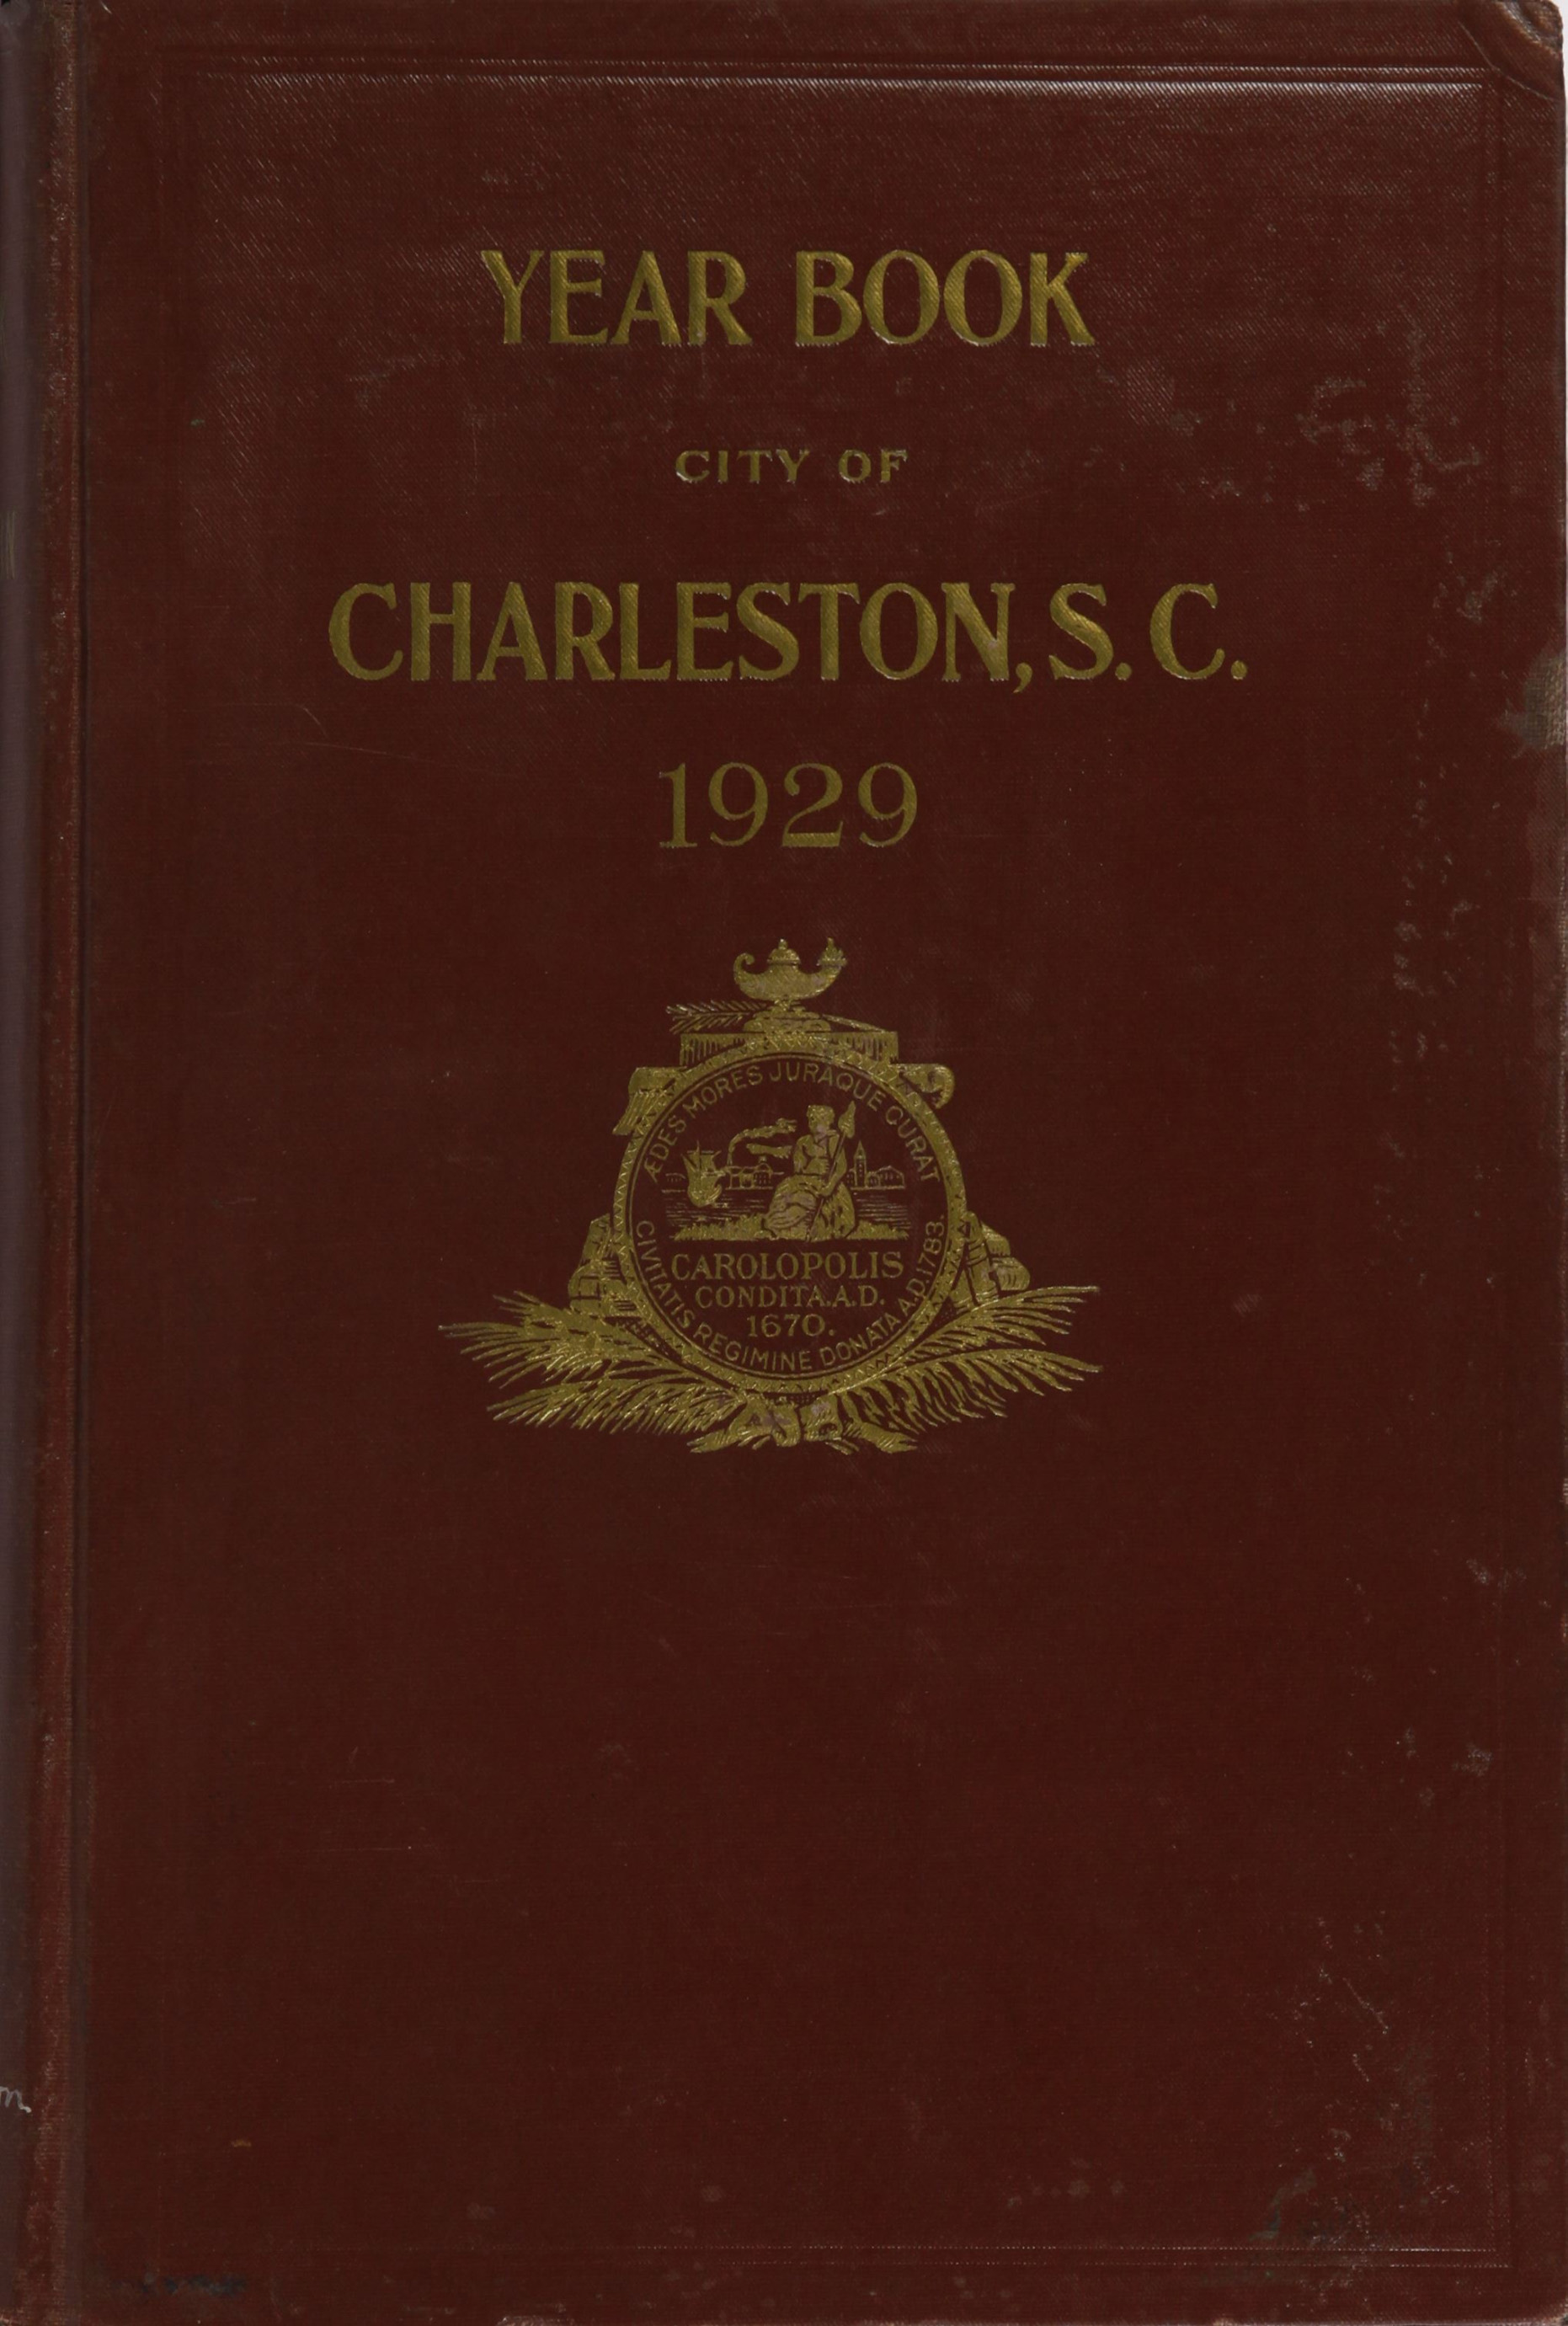 Charleston Yearbook, 1929